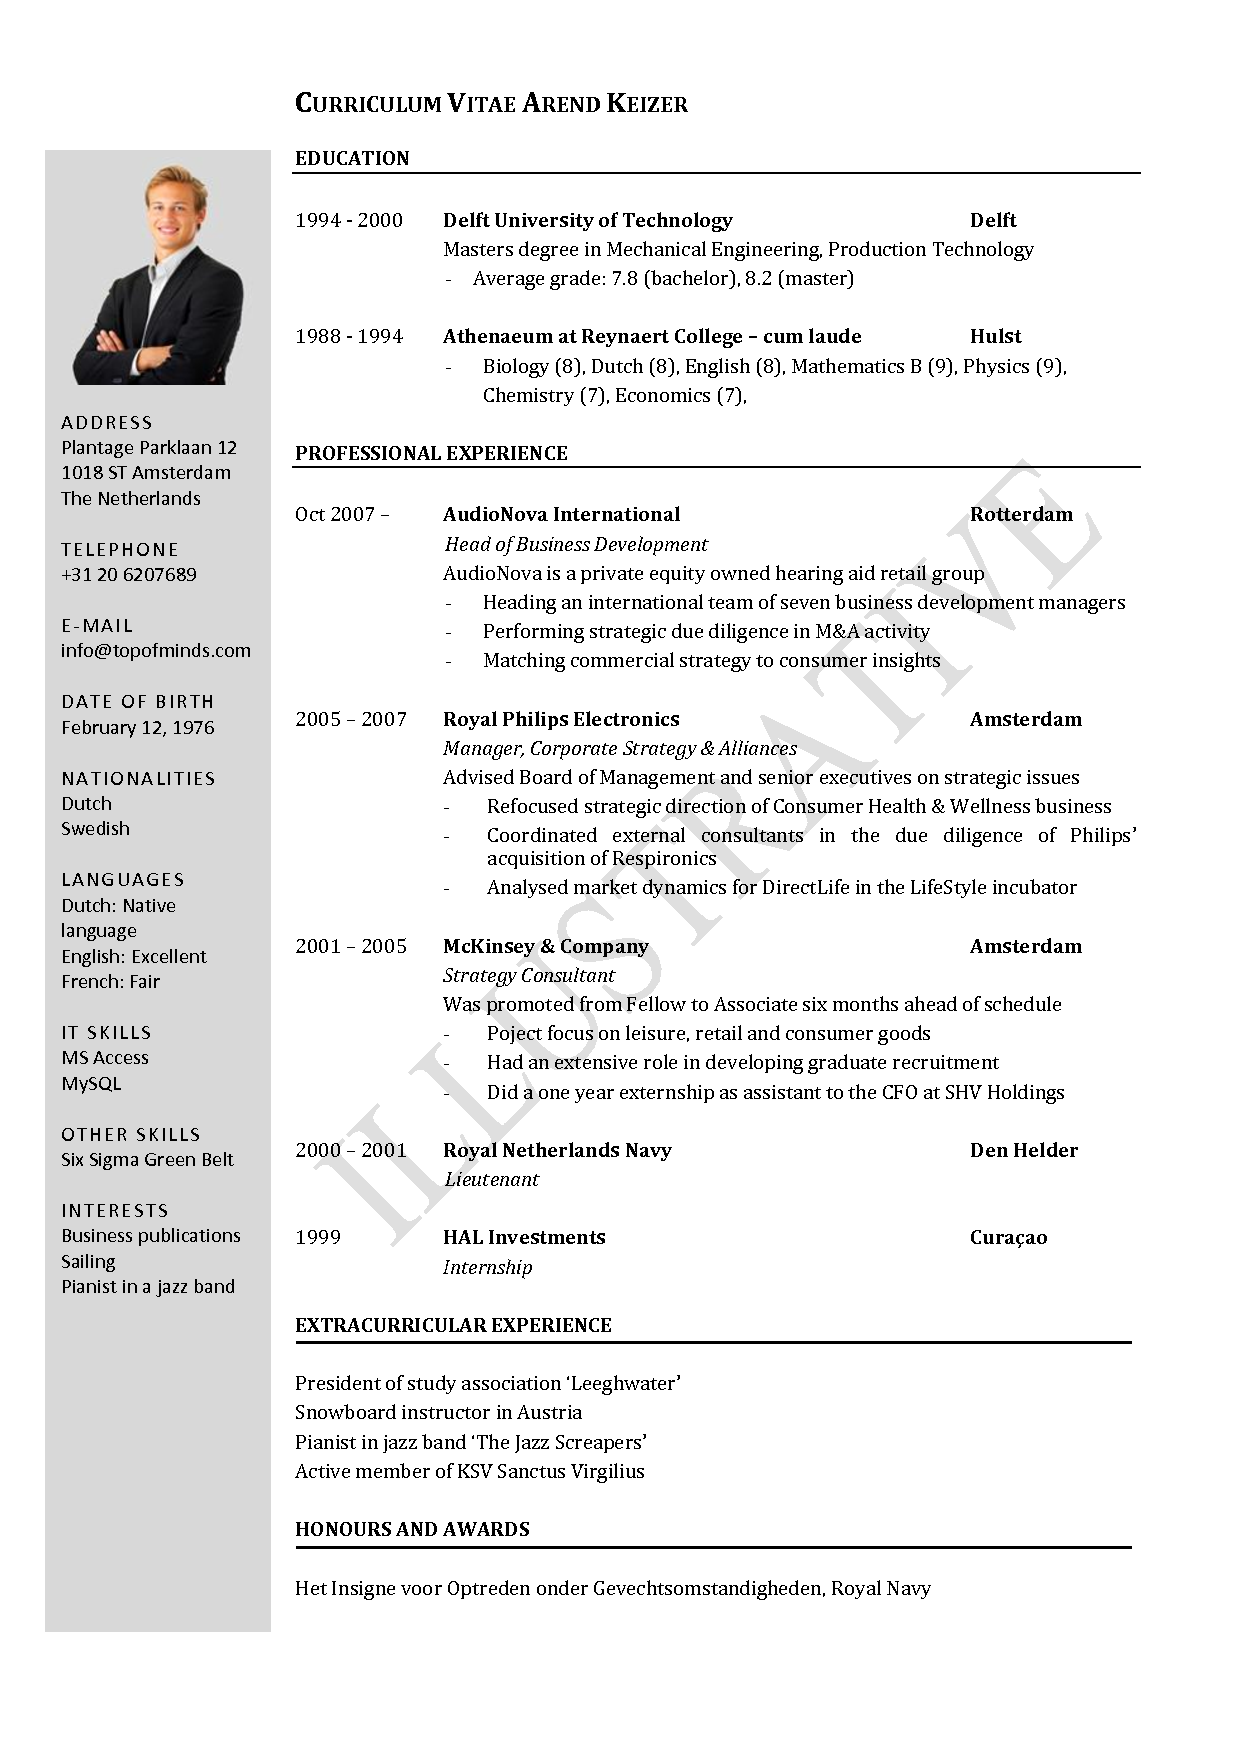 Cv template university student google search cv template pinterest cv template university student google search yelopaper Image collections